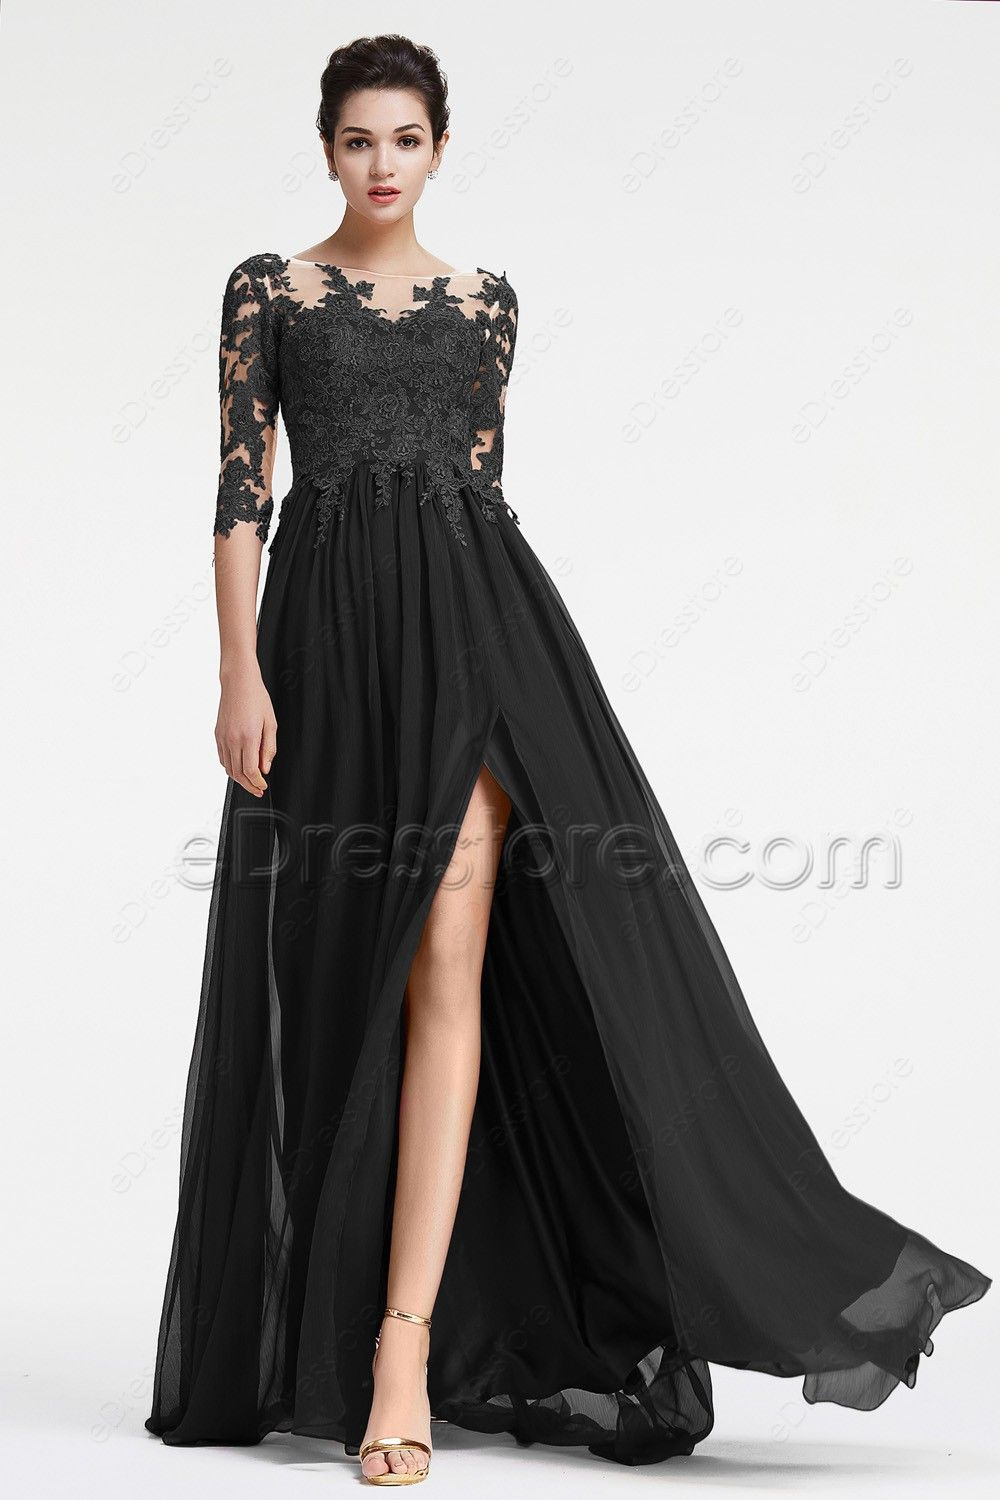 long formal dresses made of